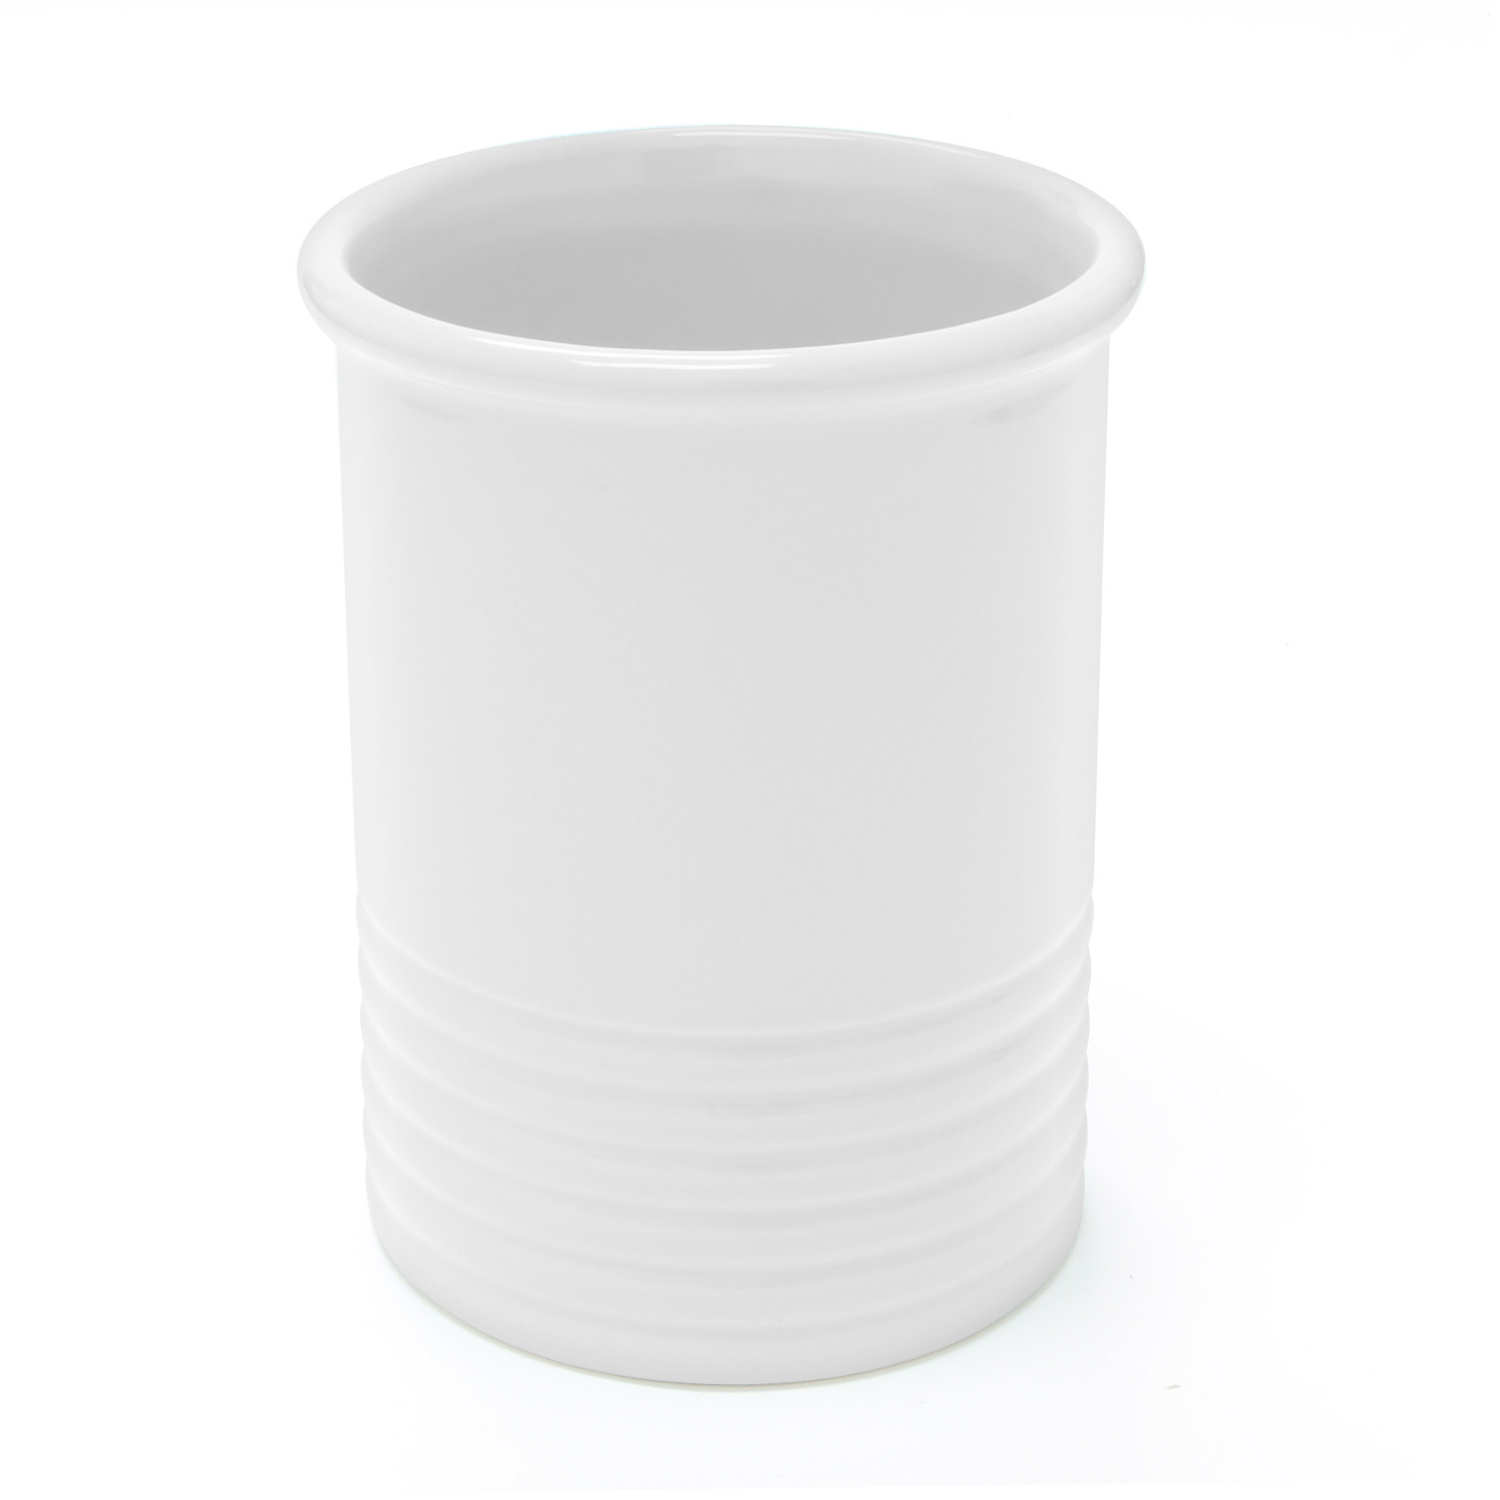 Chantal White Ceramic Medium Utensil Crock